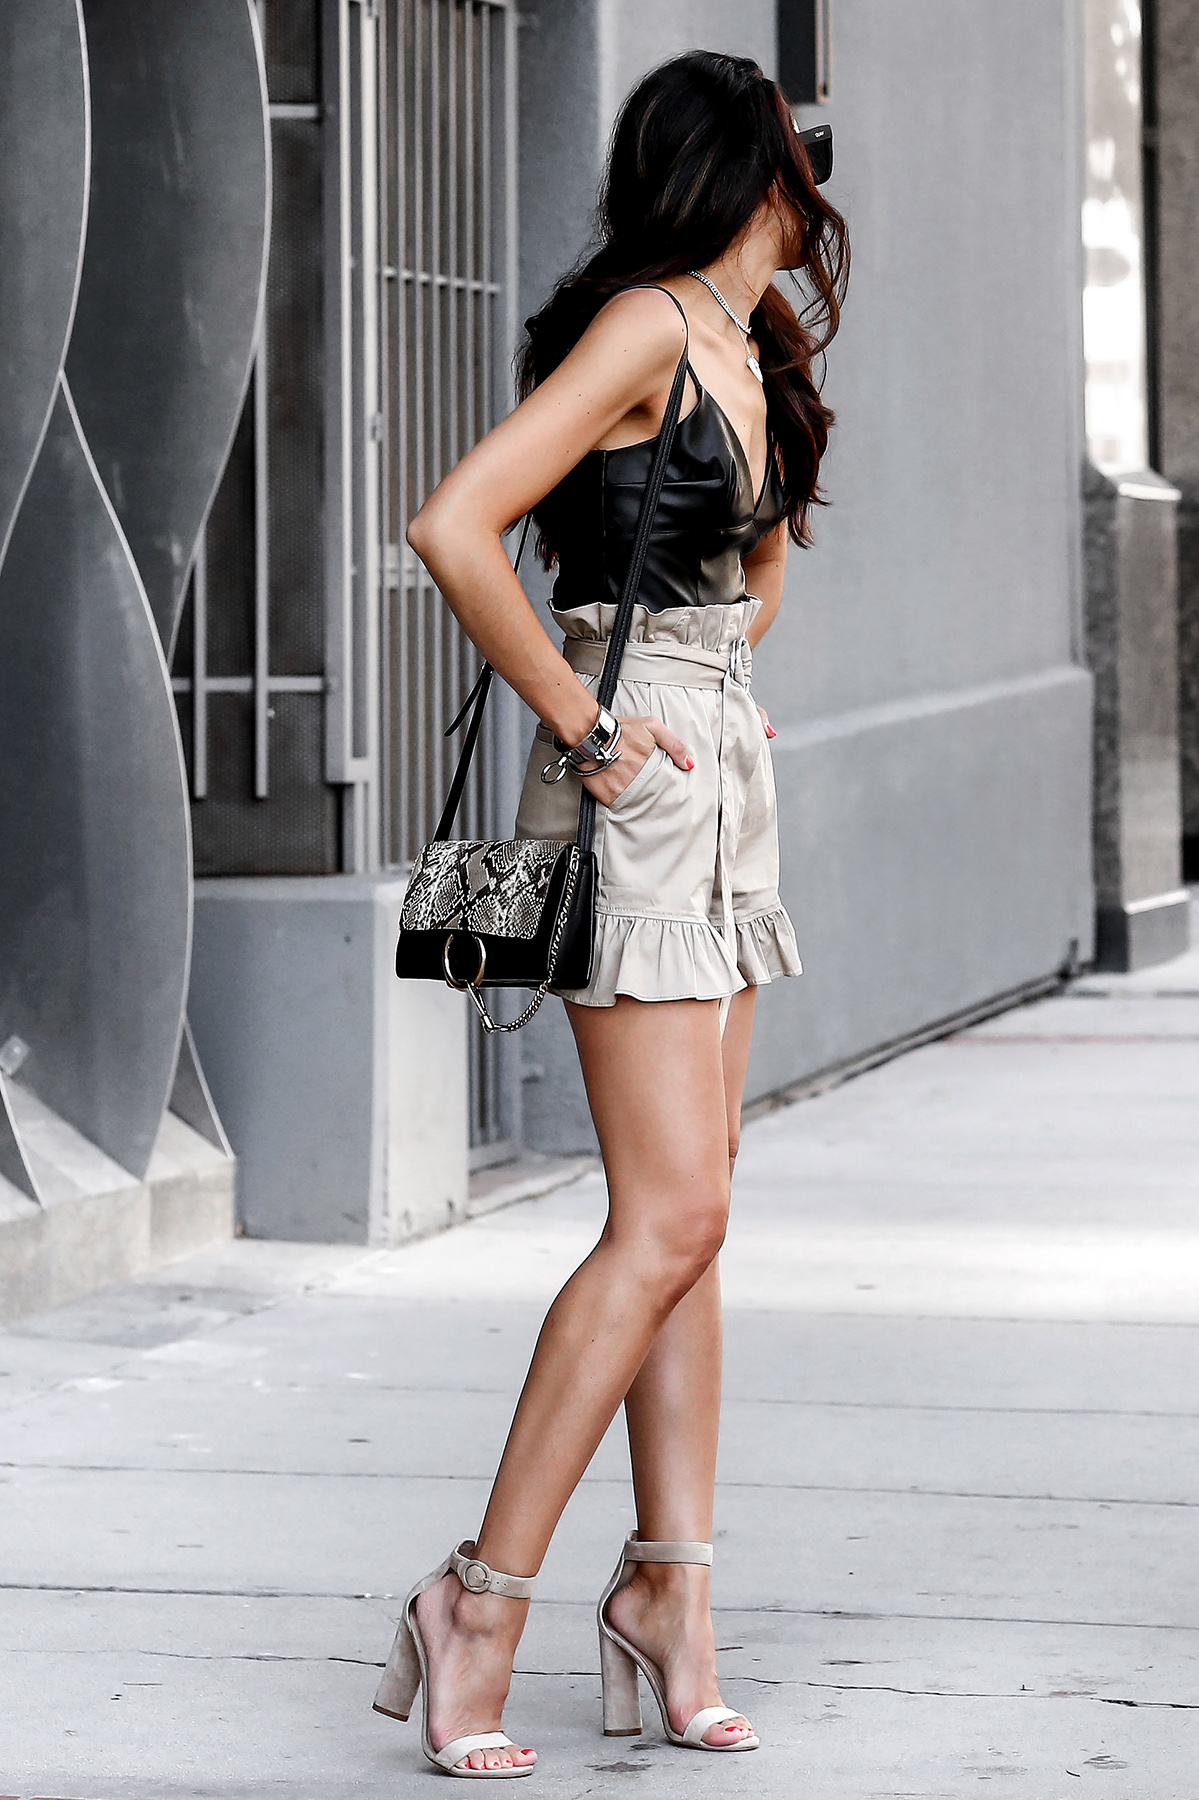 Cinq_E_Sept_Ruffle_Shorts_Express_Leather_Crop_Top_Chloe_Faye_Bag_Kendall_and_Kylie_Sandals.jpg